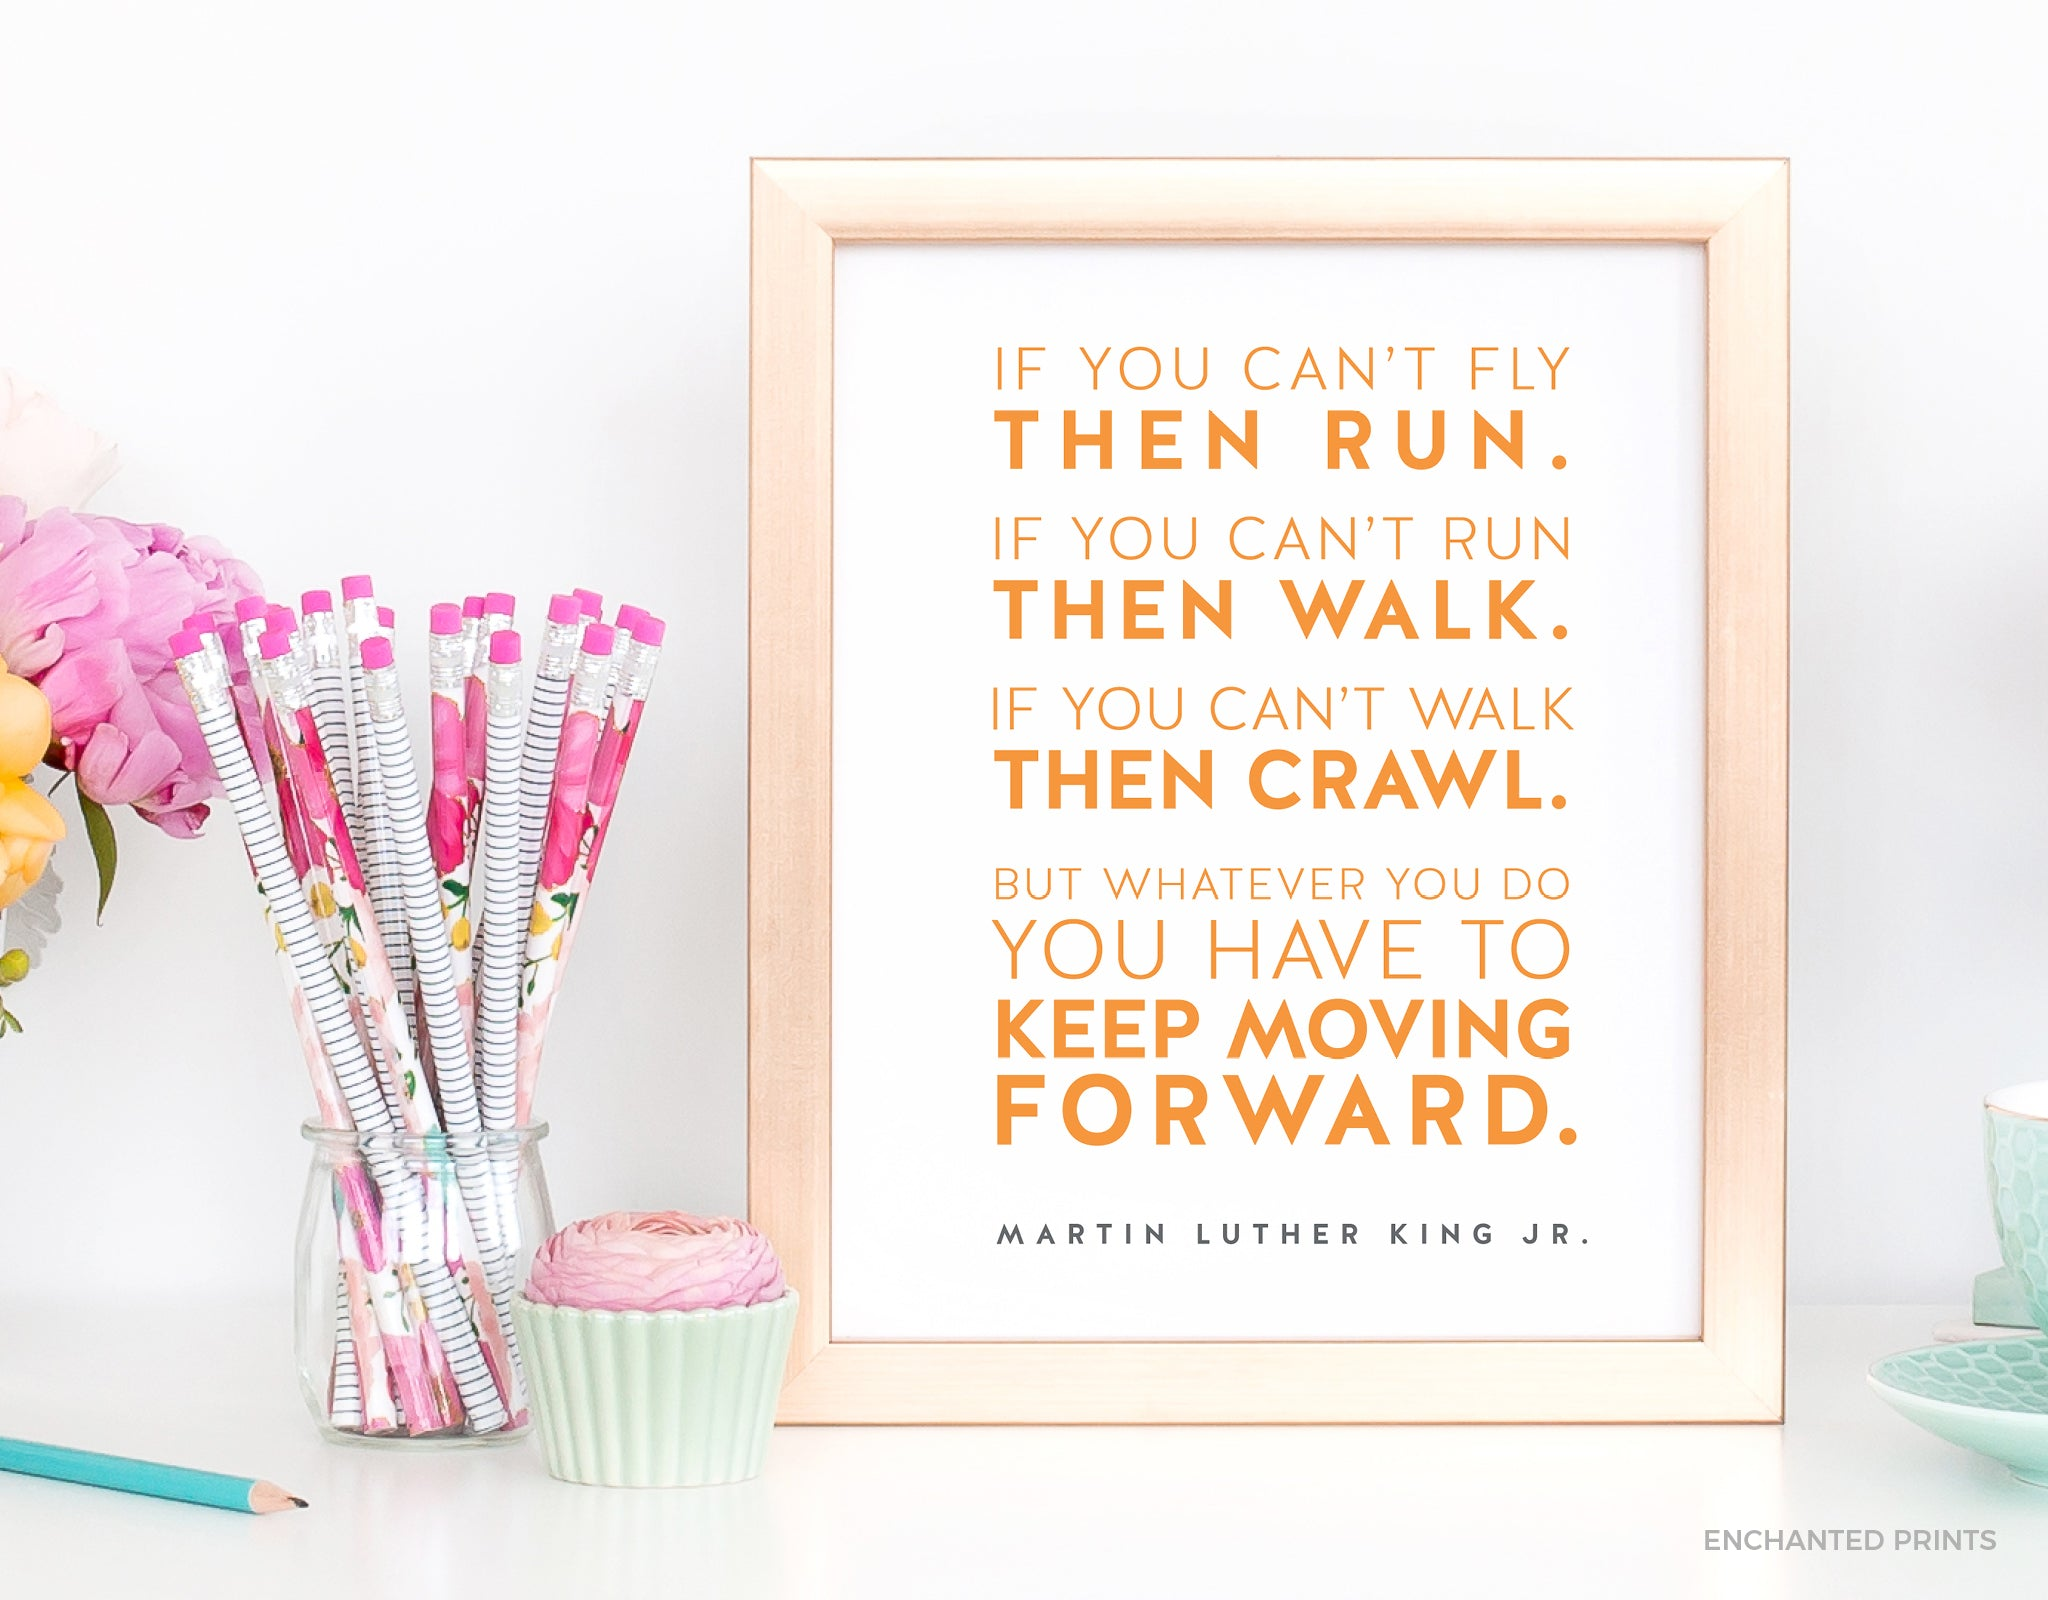 Keep moving forward, from Martin Luther King, Jr.